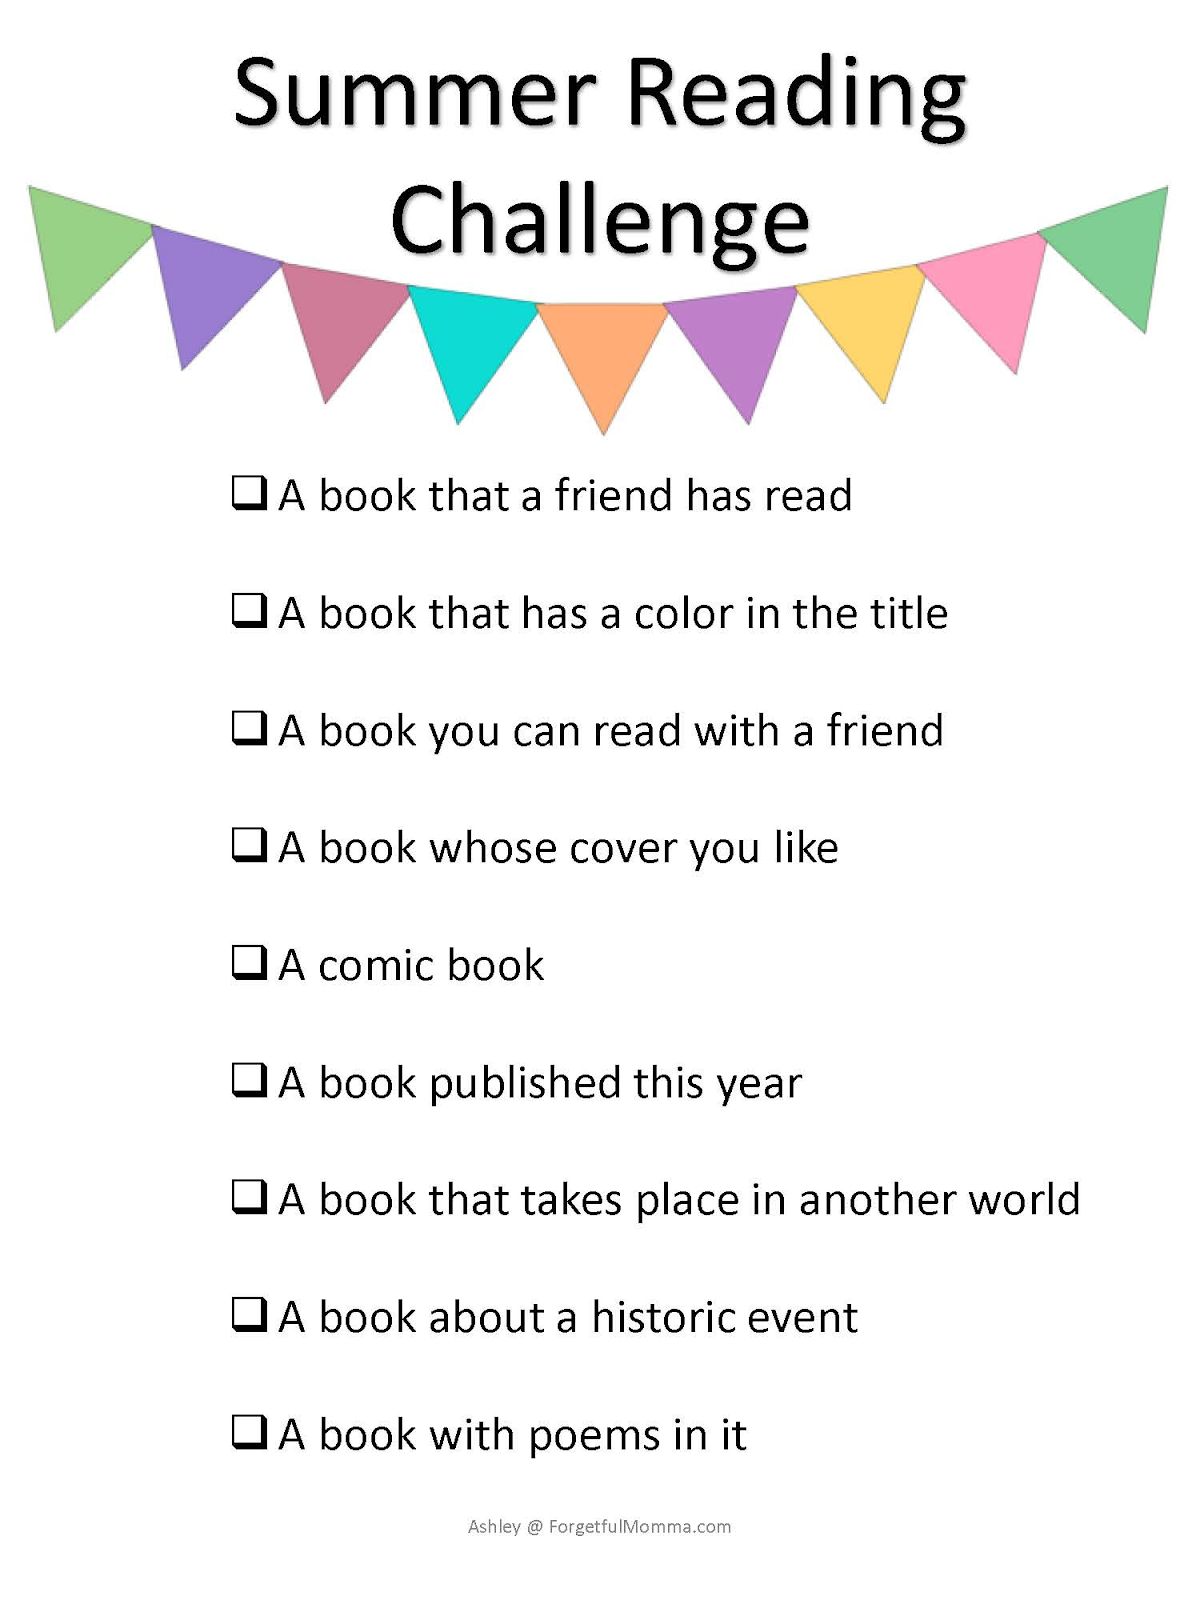 Turn it into a challenge